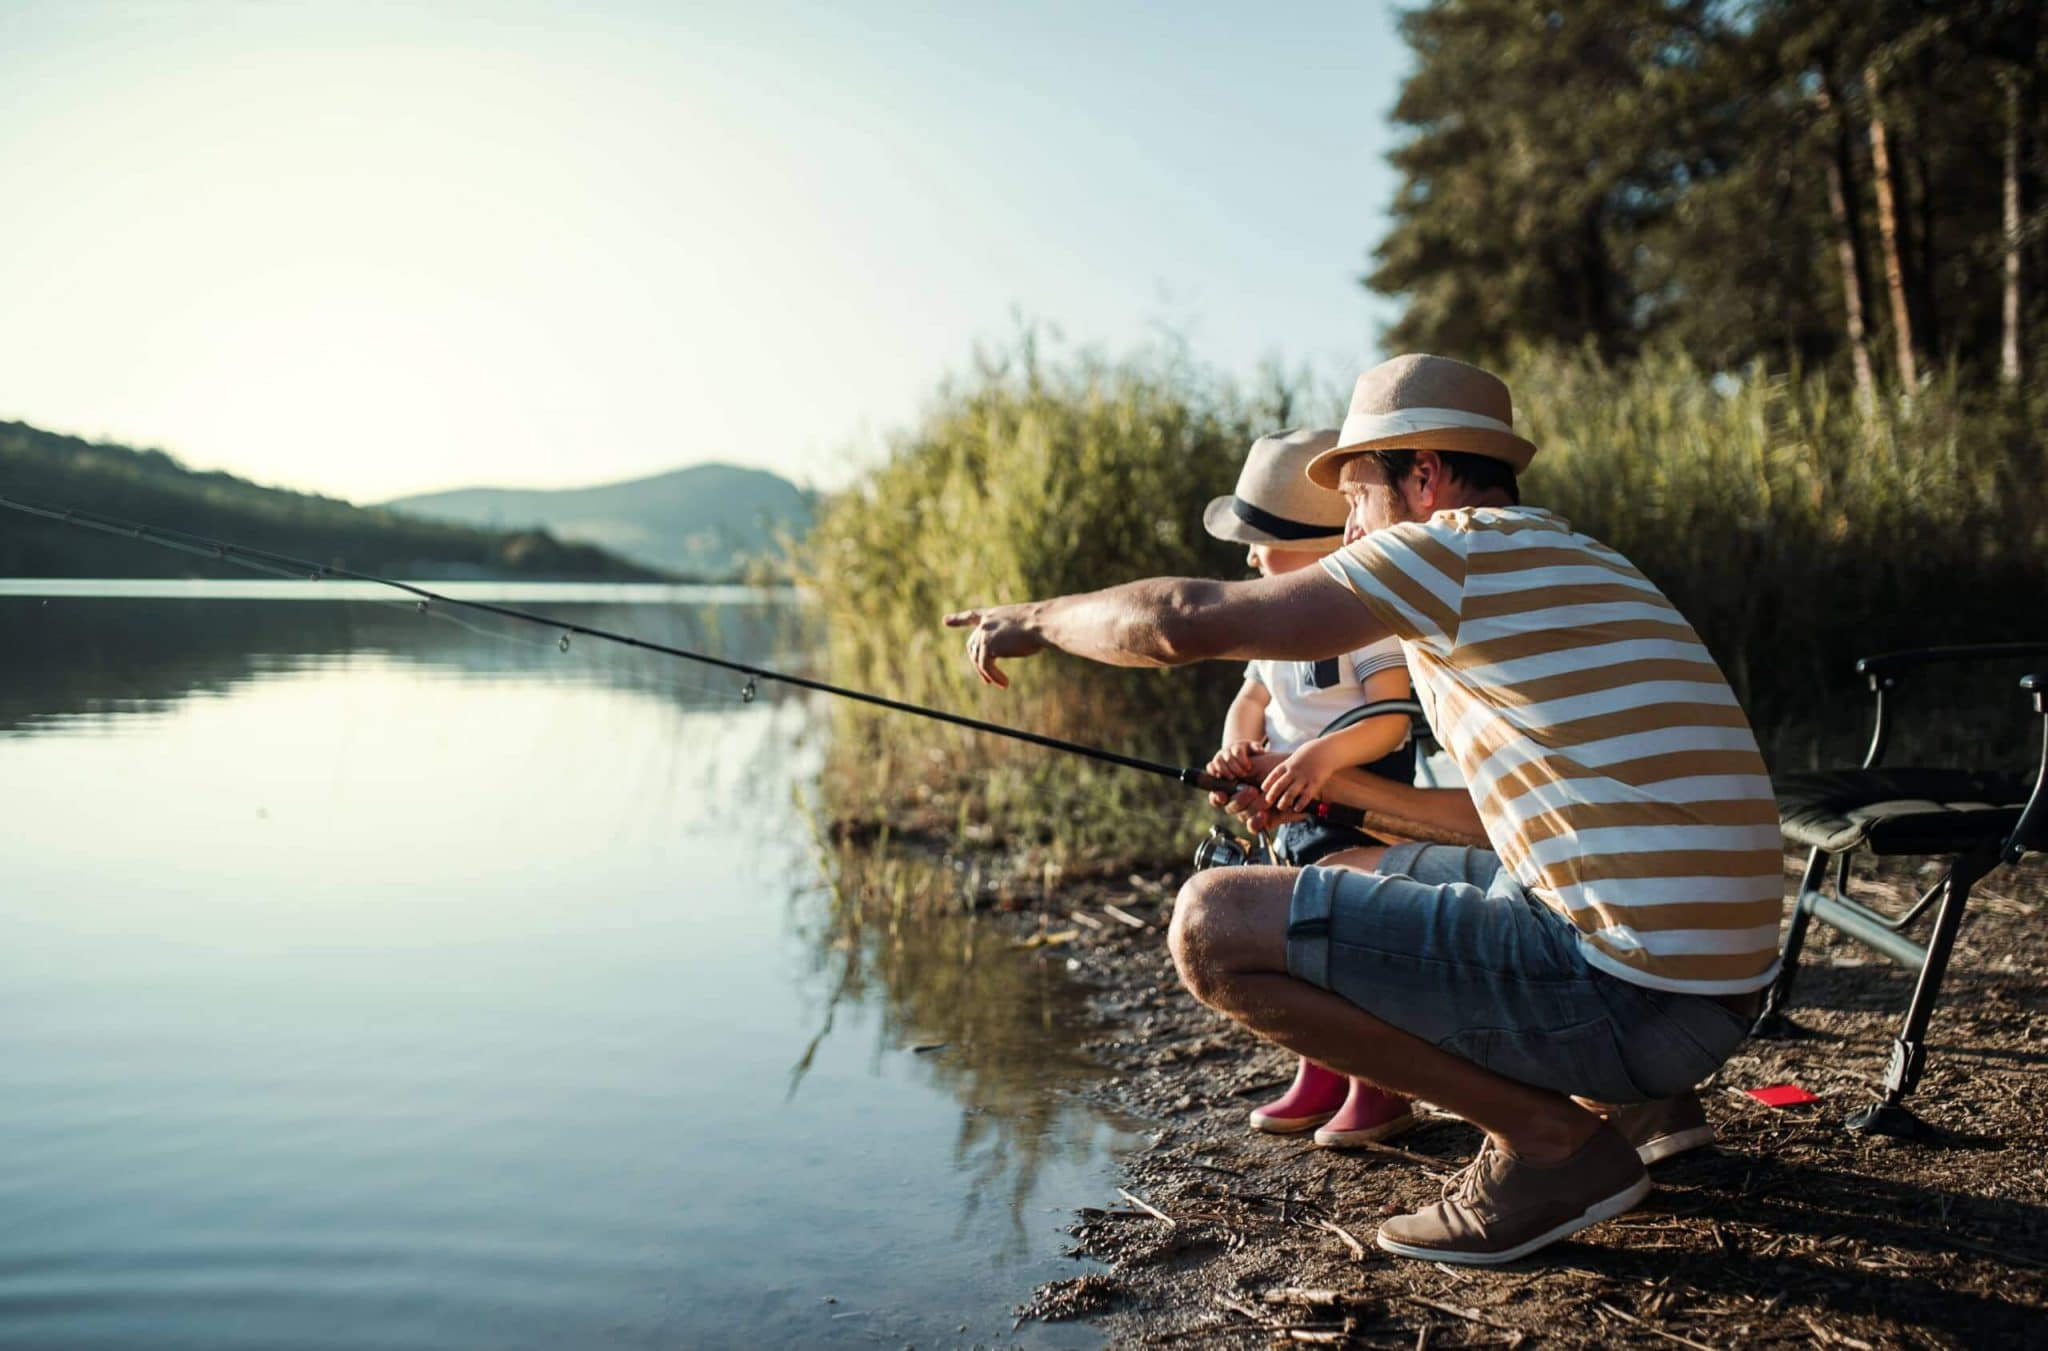 A mature father with a small toddler son outdoors fishing by a river or a lake.